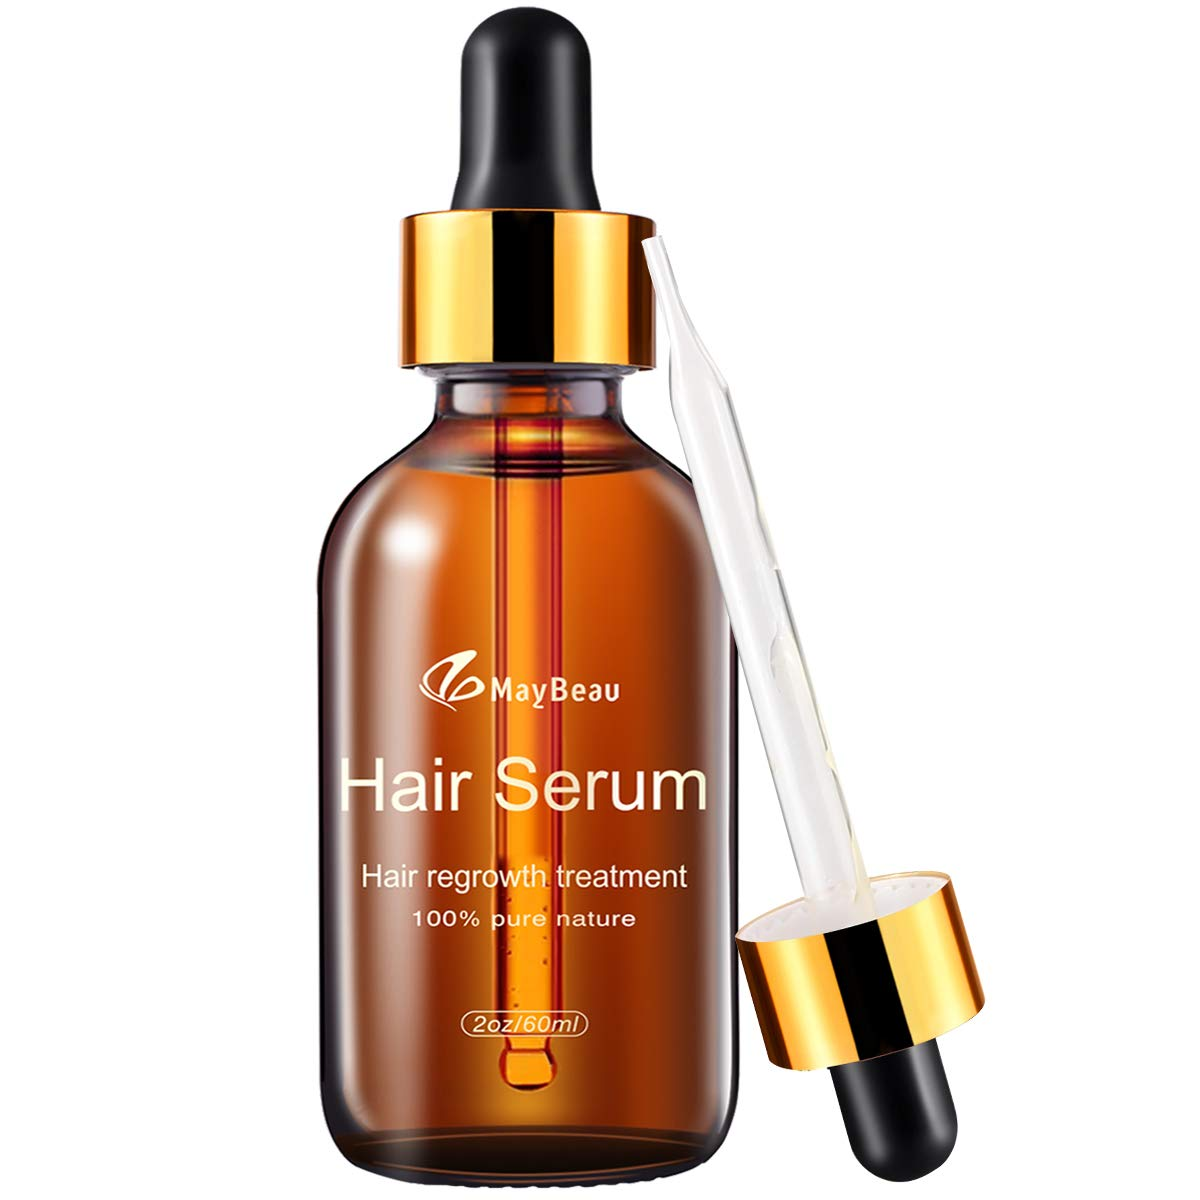 Hair Growth Oil MayBeau Upgrated Hair Growth Treatment for Women Men With Thinning Hair Loss Serum for Healthier, Thicker, Longer Hair